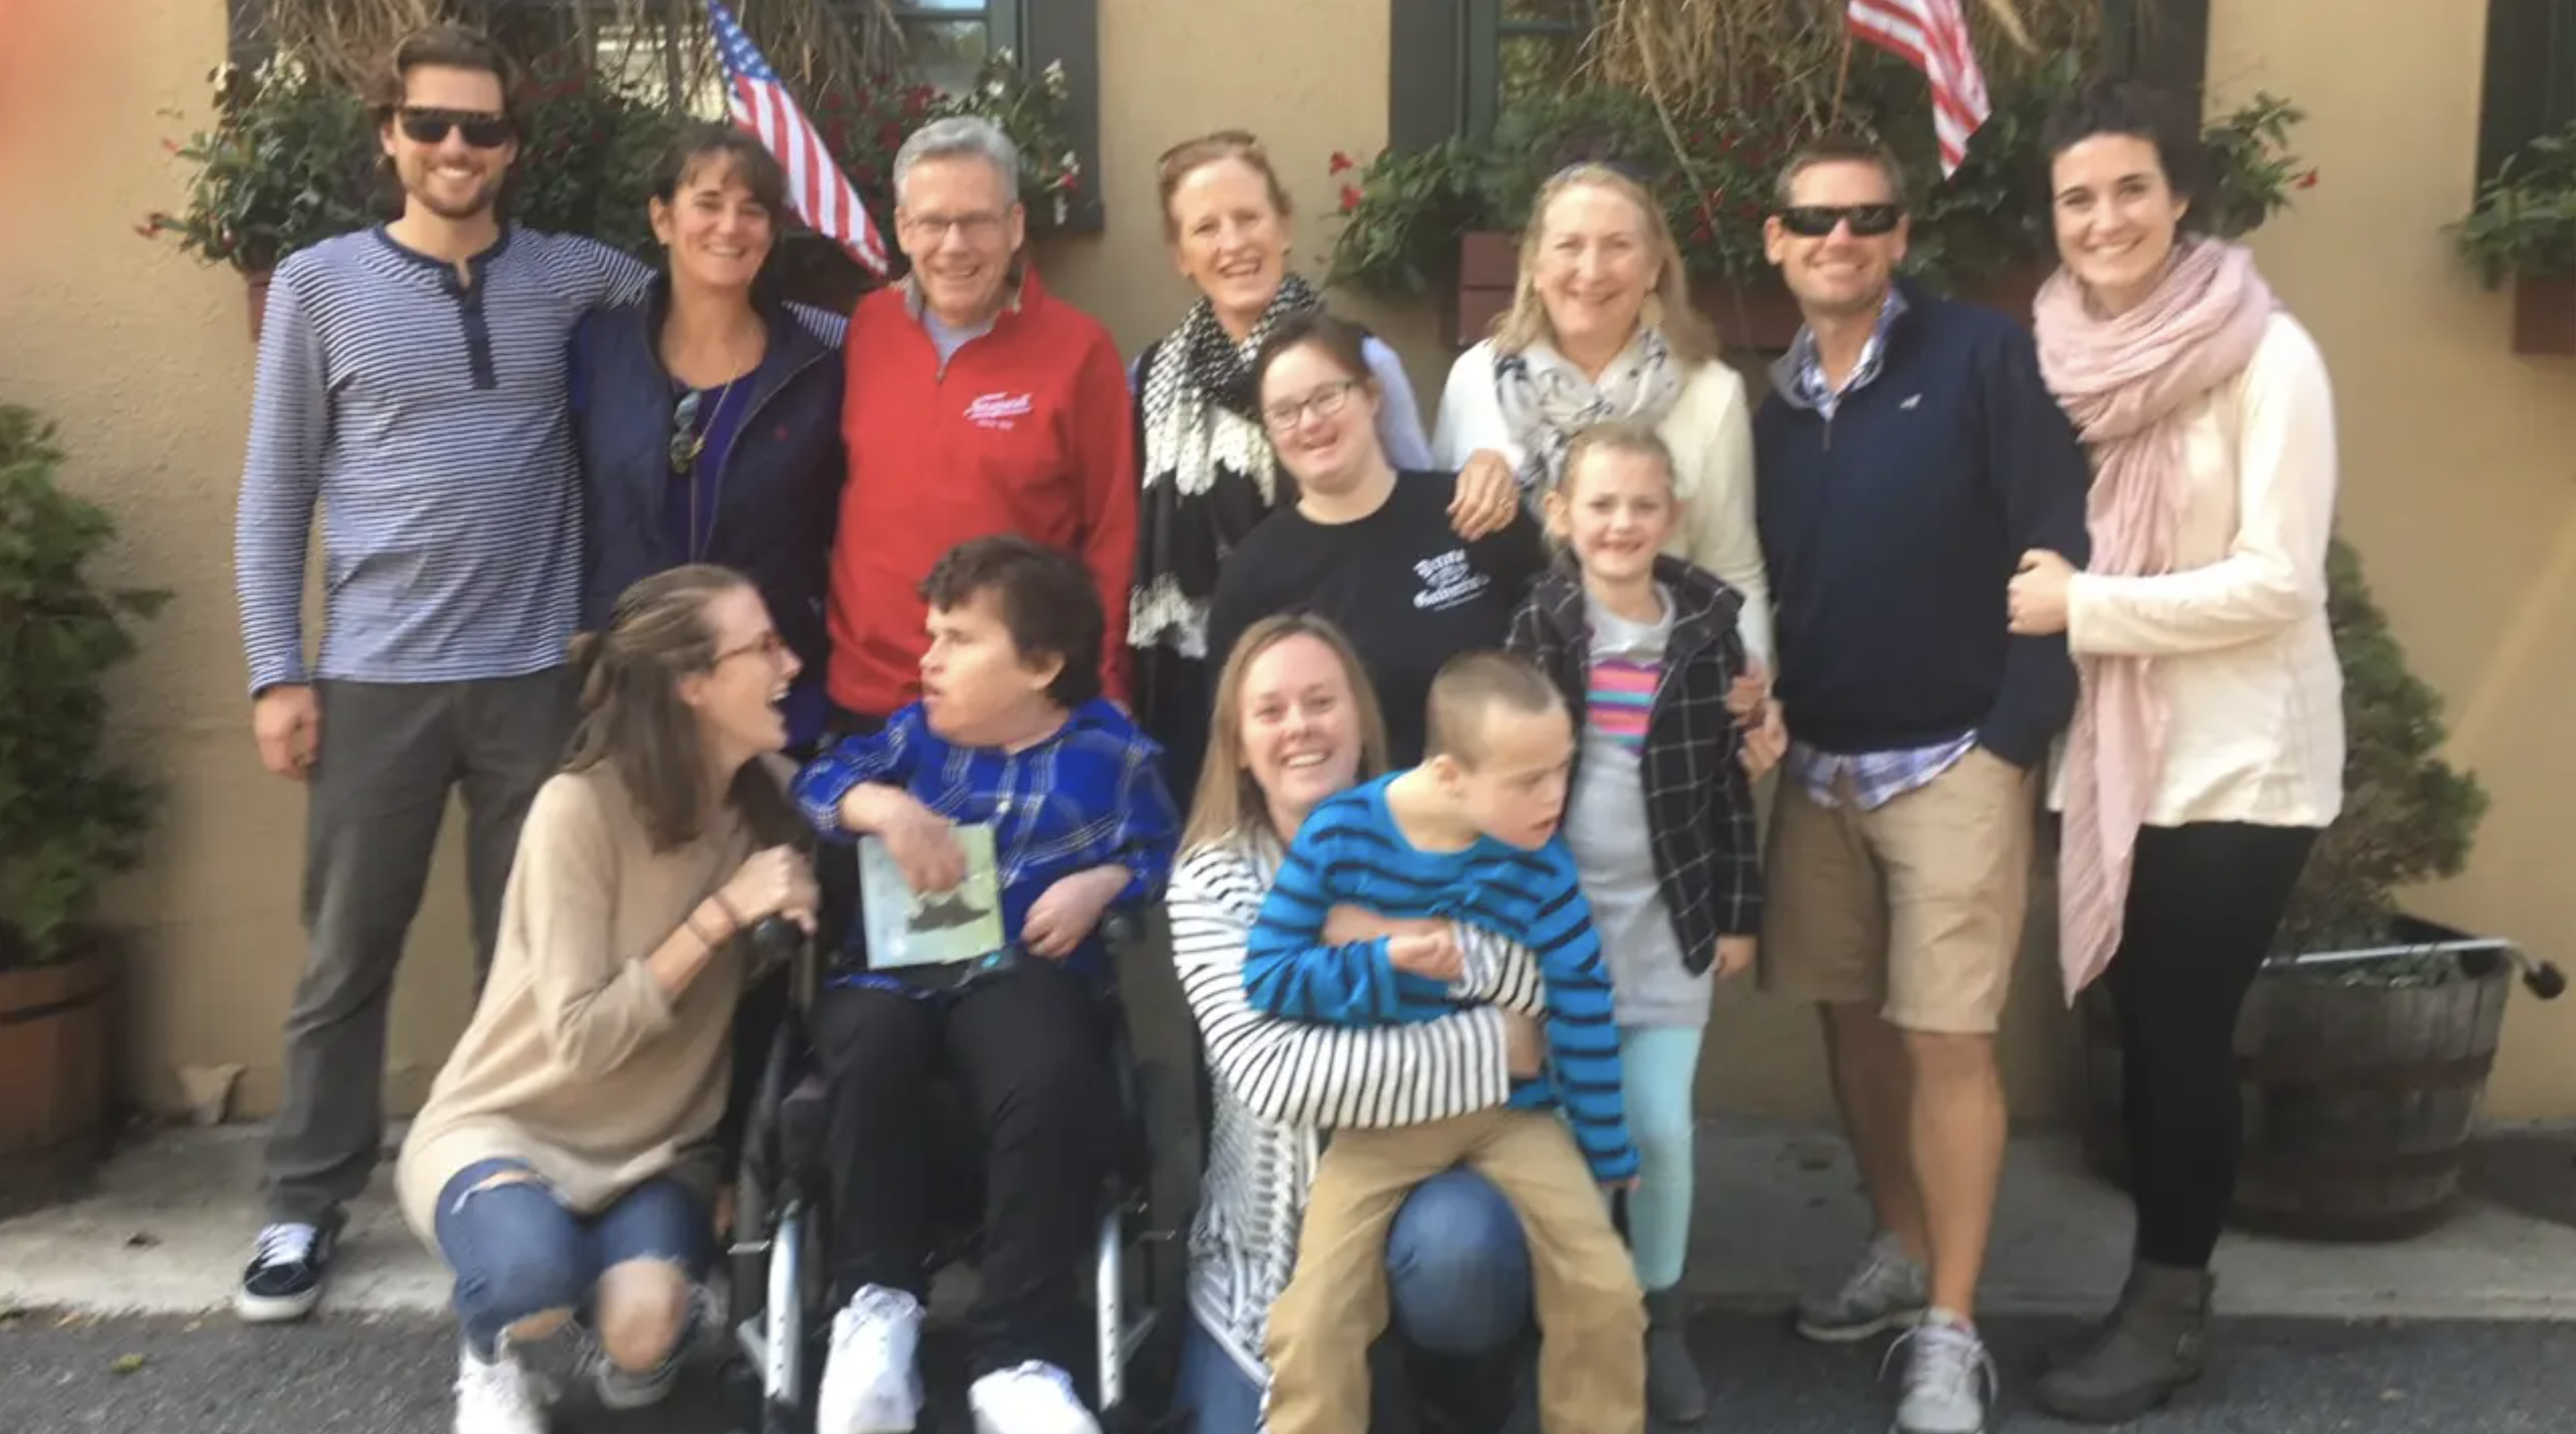 Image of Kelsey and her family. There are about 13 of them.